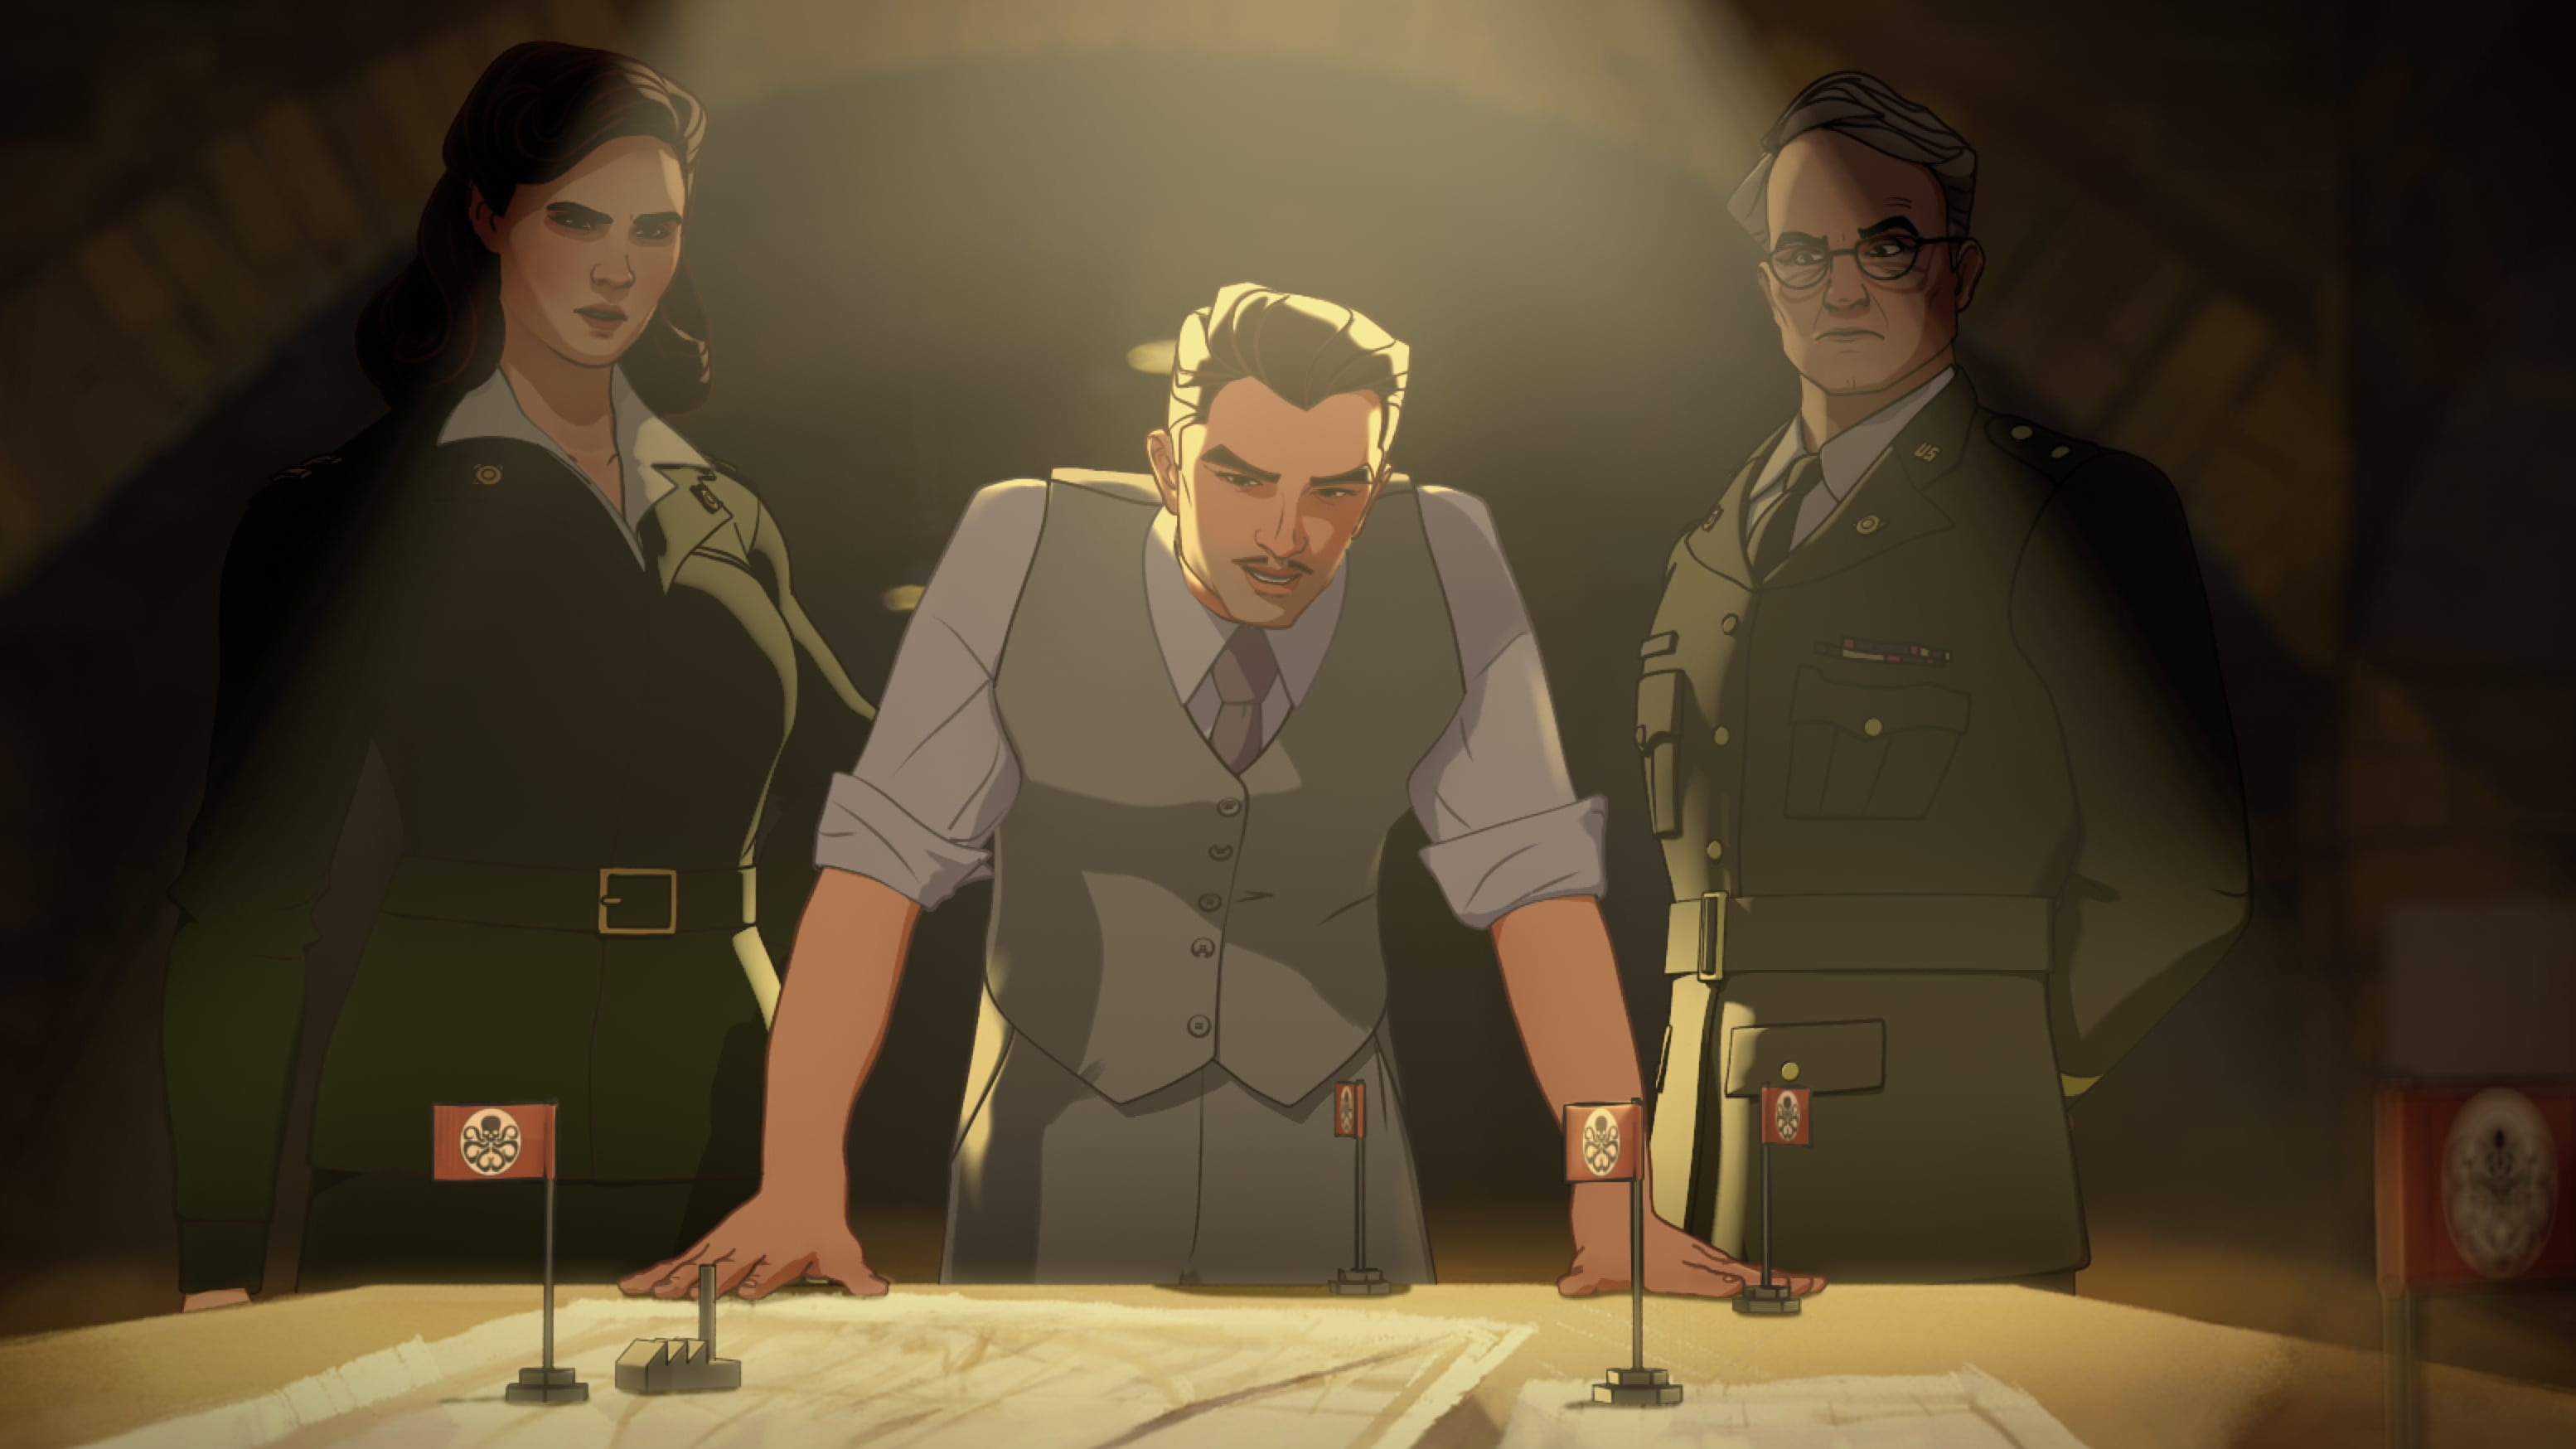 (L-R): Captain Carter/Peggy Carter, Howard Stark and Colonel Flynn in Marvel Studios' WHAT IF…? exclusively on Disney+. ©Marvel Studios 2021. All Rights Reserved.